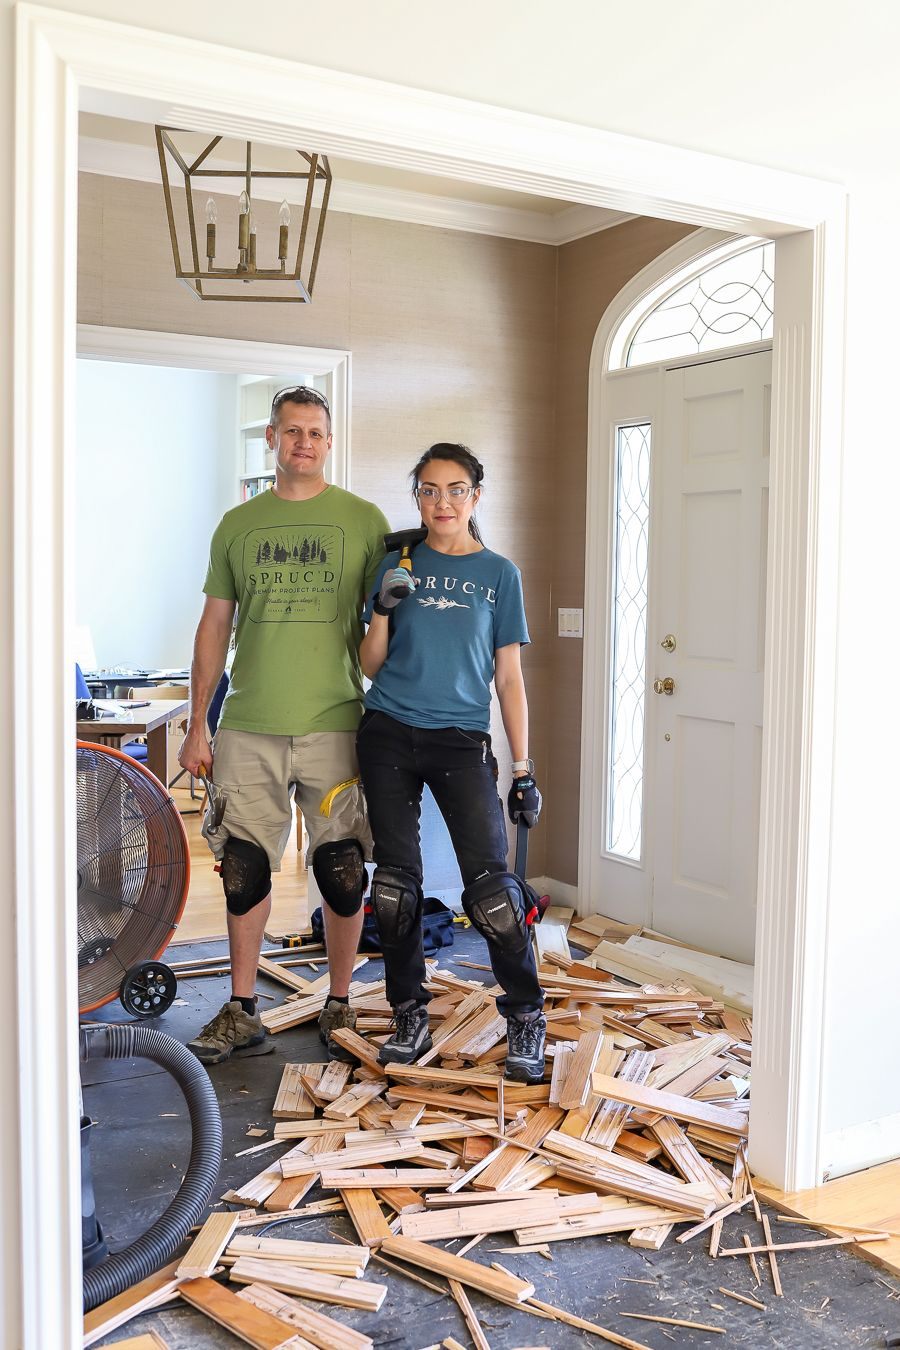 How To Remove Hardwood Flooring The Easy Way In 2020 Woodworking Plans Beginner Awesome Woodworking Ideas Woodworking Joinery